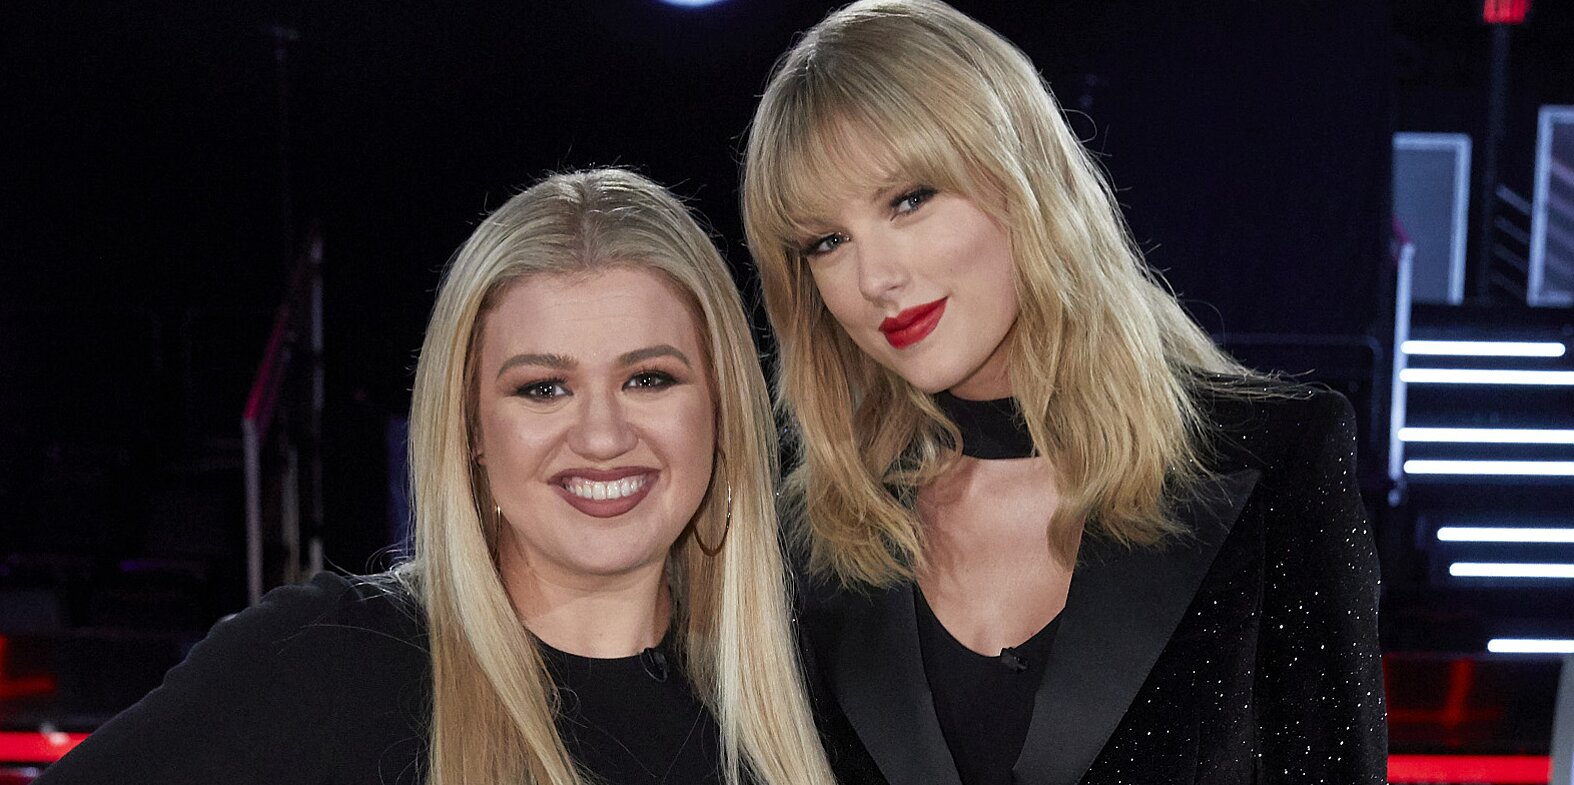 So Maybe We Have Kelly Clarkson to Thank for Taylor Swift's Re-Released Music